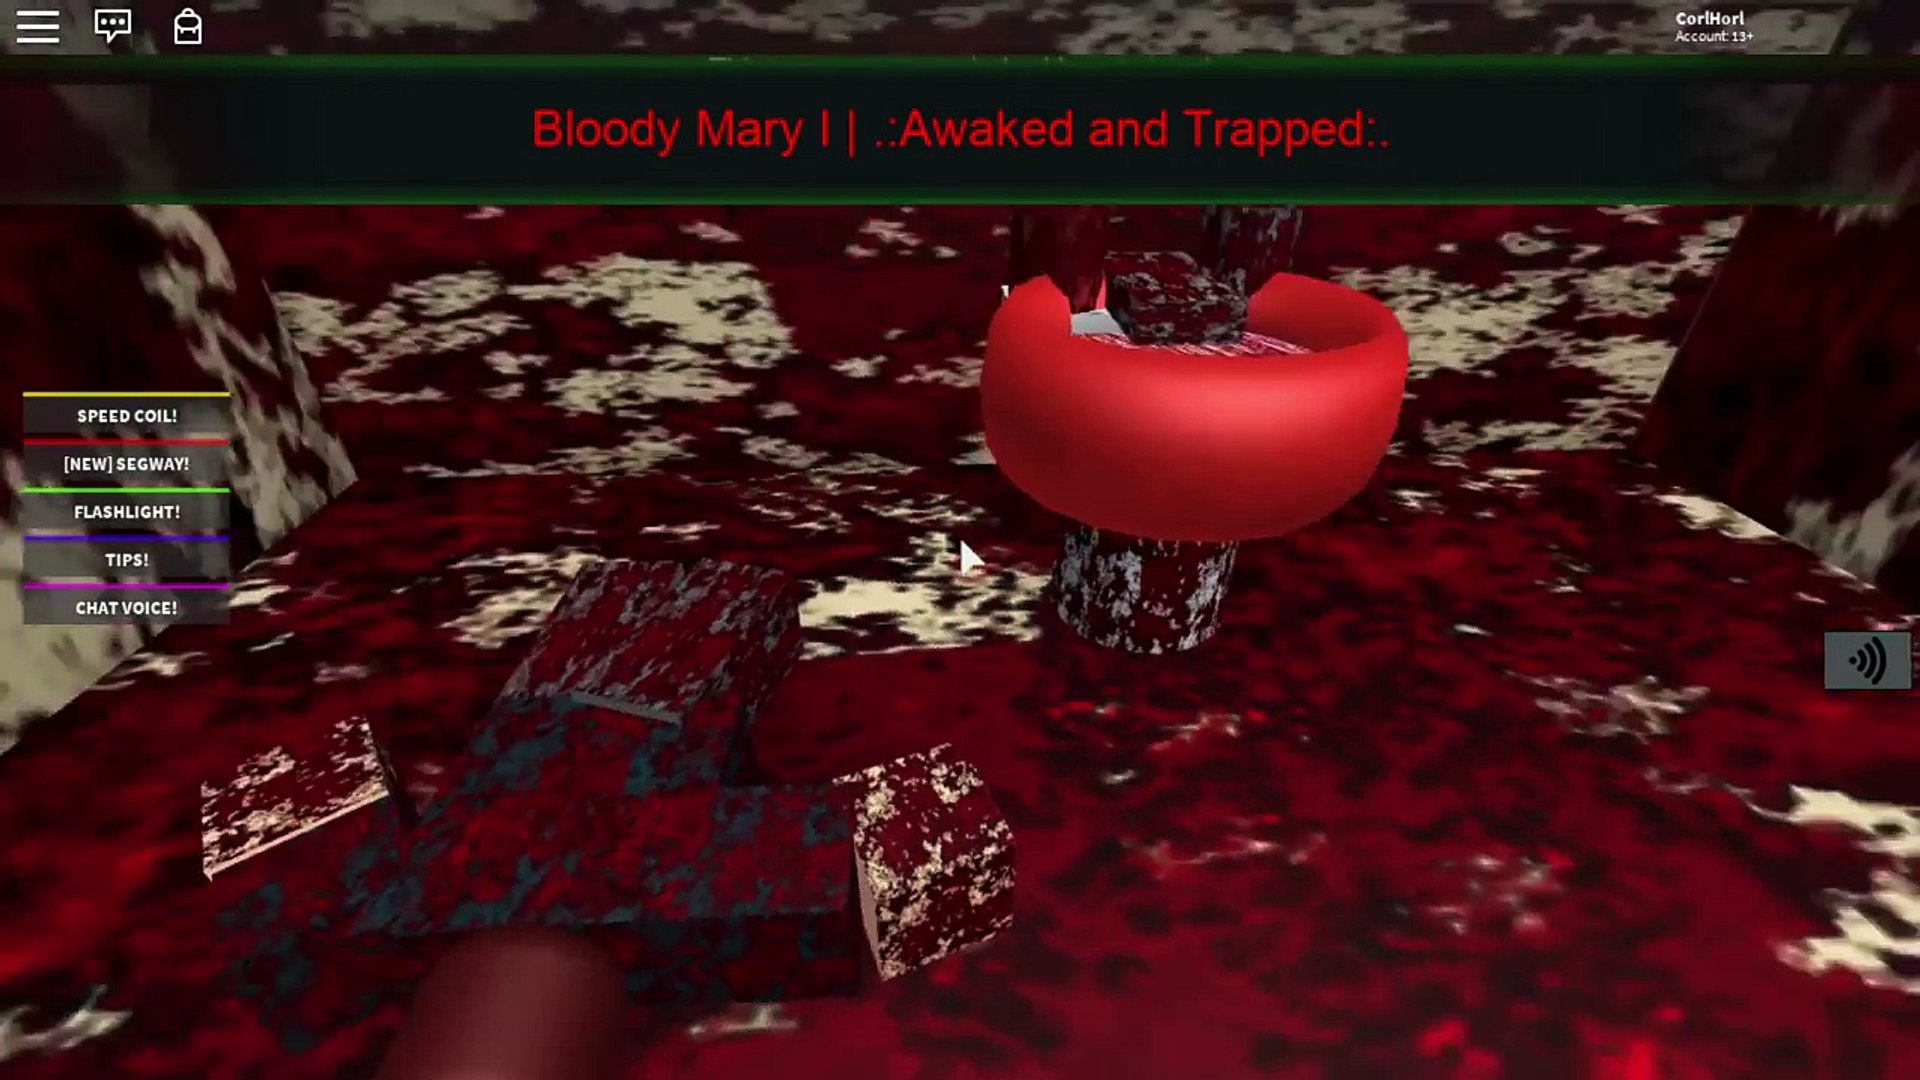 Dollhouse Roleplay Roblox - Roblox Adventures Dont Look Into The Mirror In Roblox Bloody Mary In Roblox